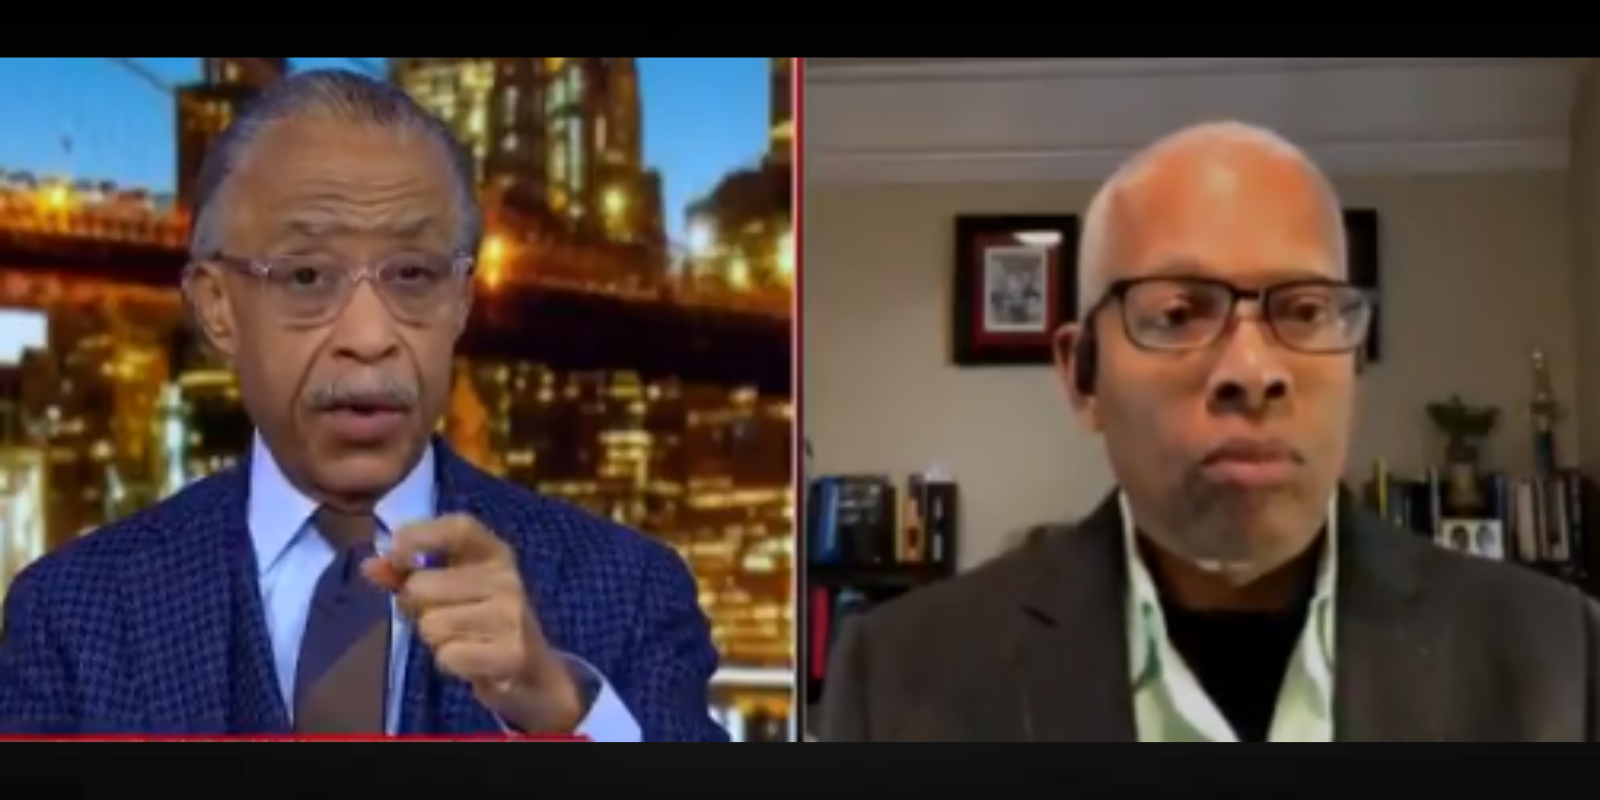 WATCH: Democratic Rep. has 'no doubt' rioters would have 'lynched' black lawmakers without intervention